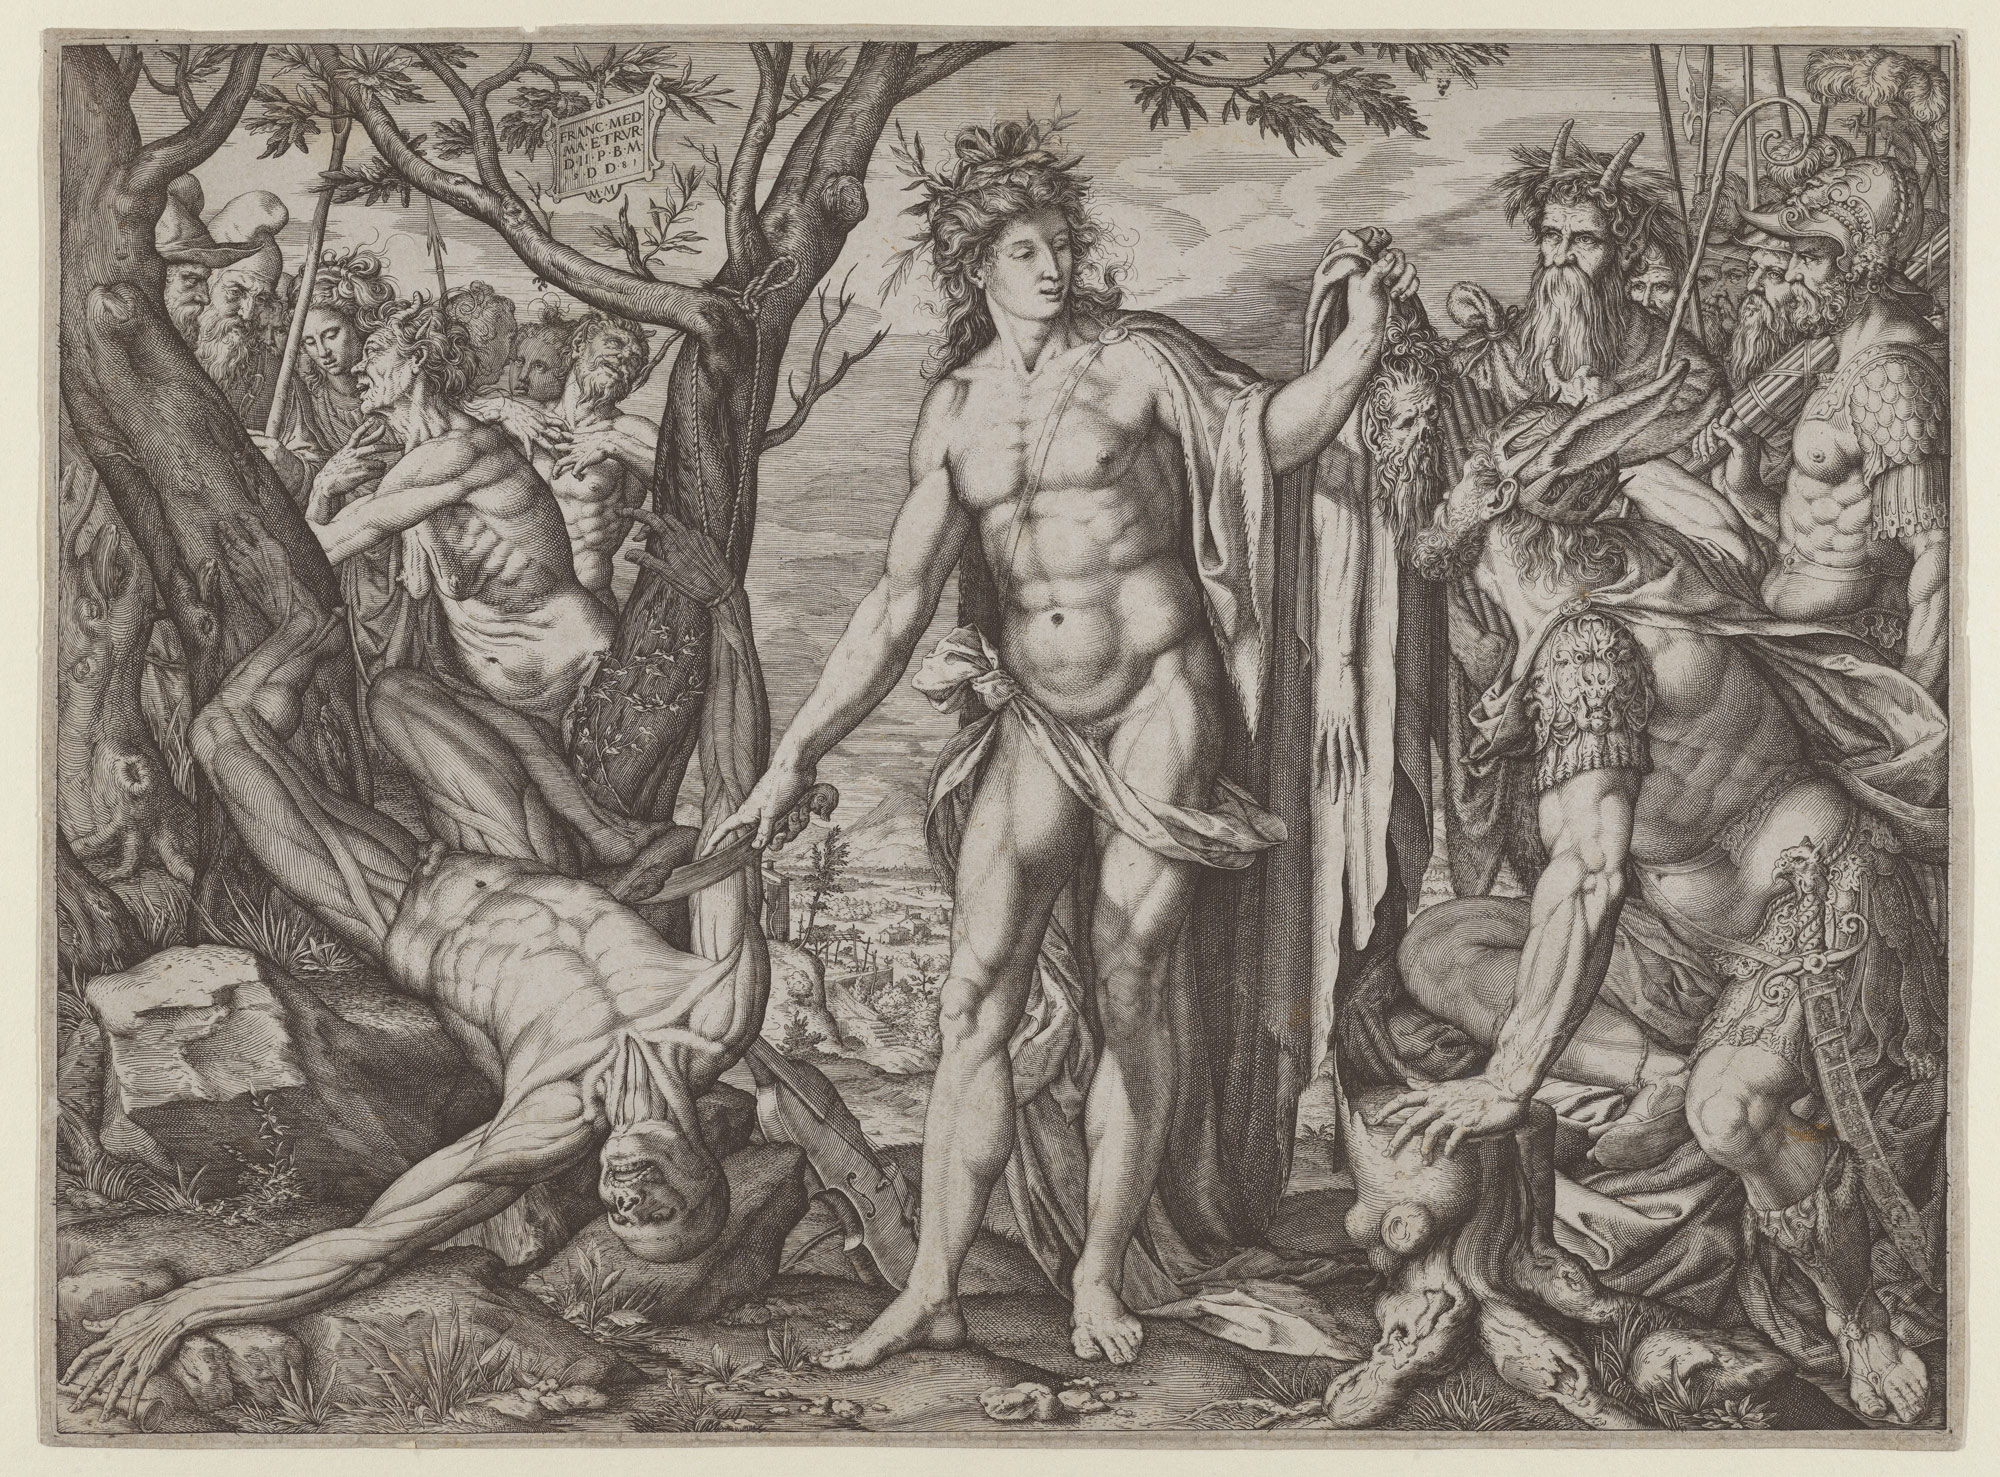 Apollo and Marsyas and the Judgment of Midas